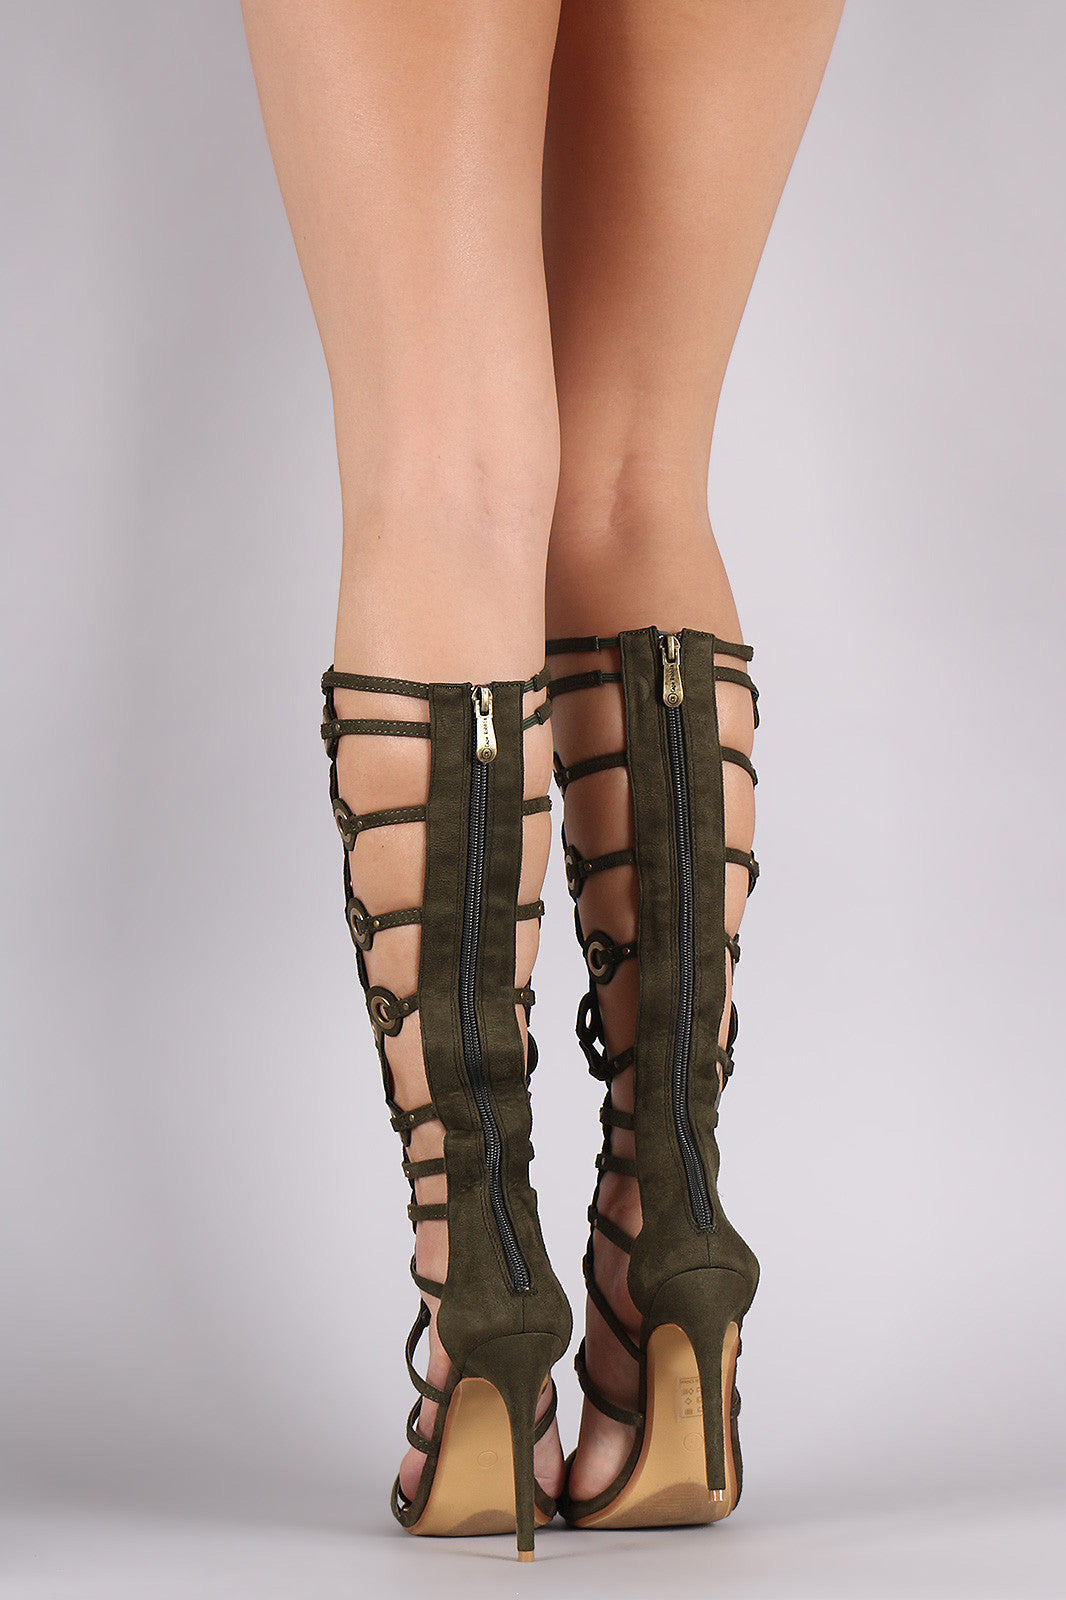 Suede Grommets Embellished Strappy Gladiator Heel - Thick 'N' Curvy Shop - 3